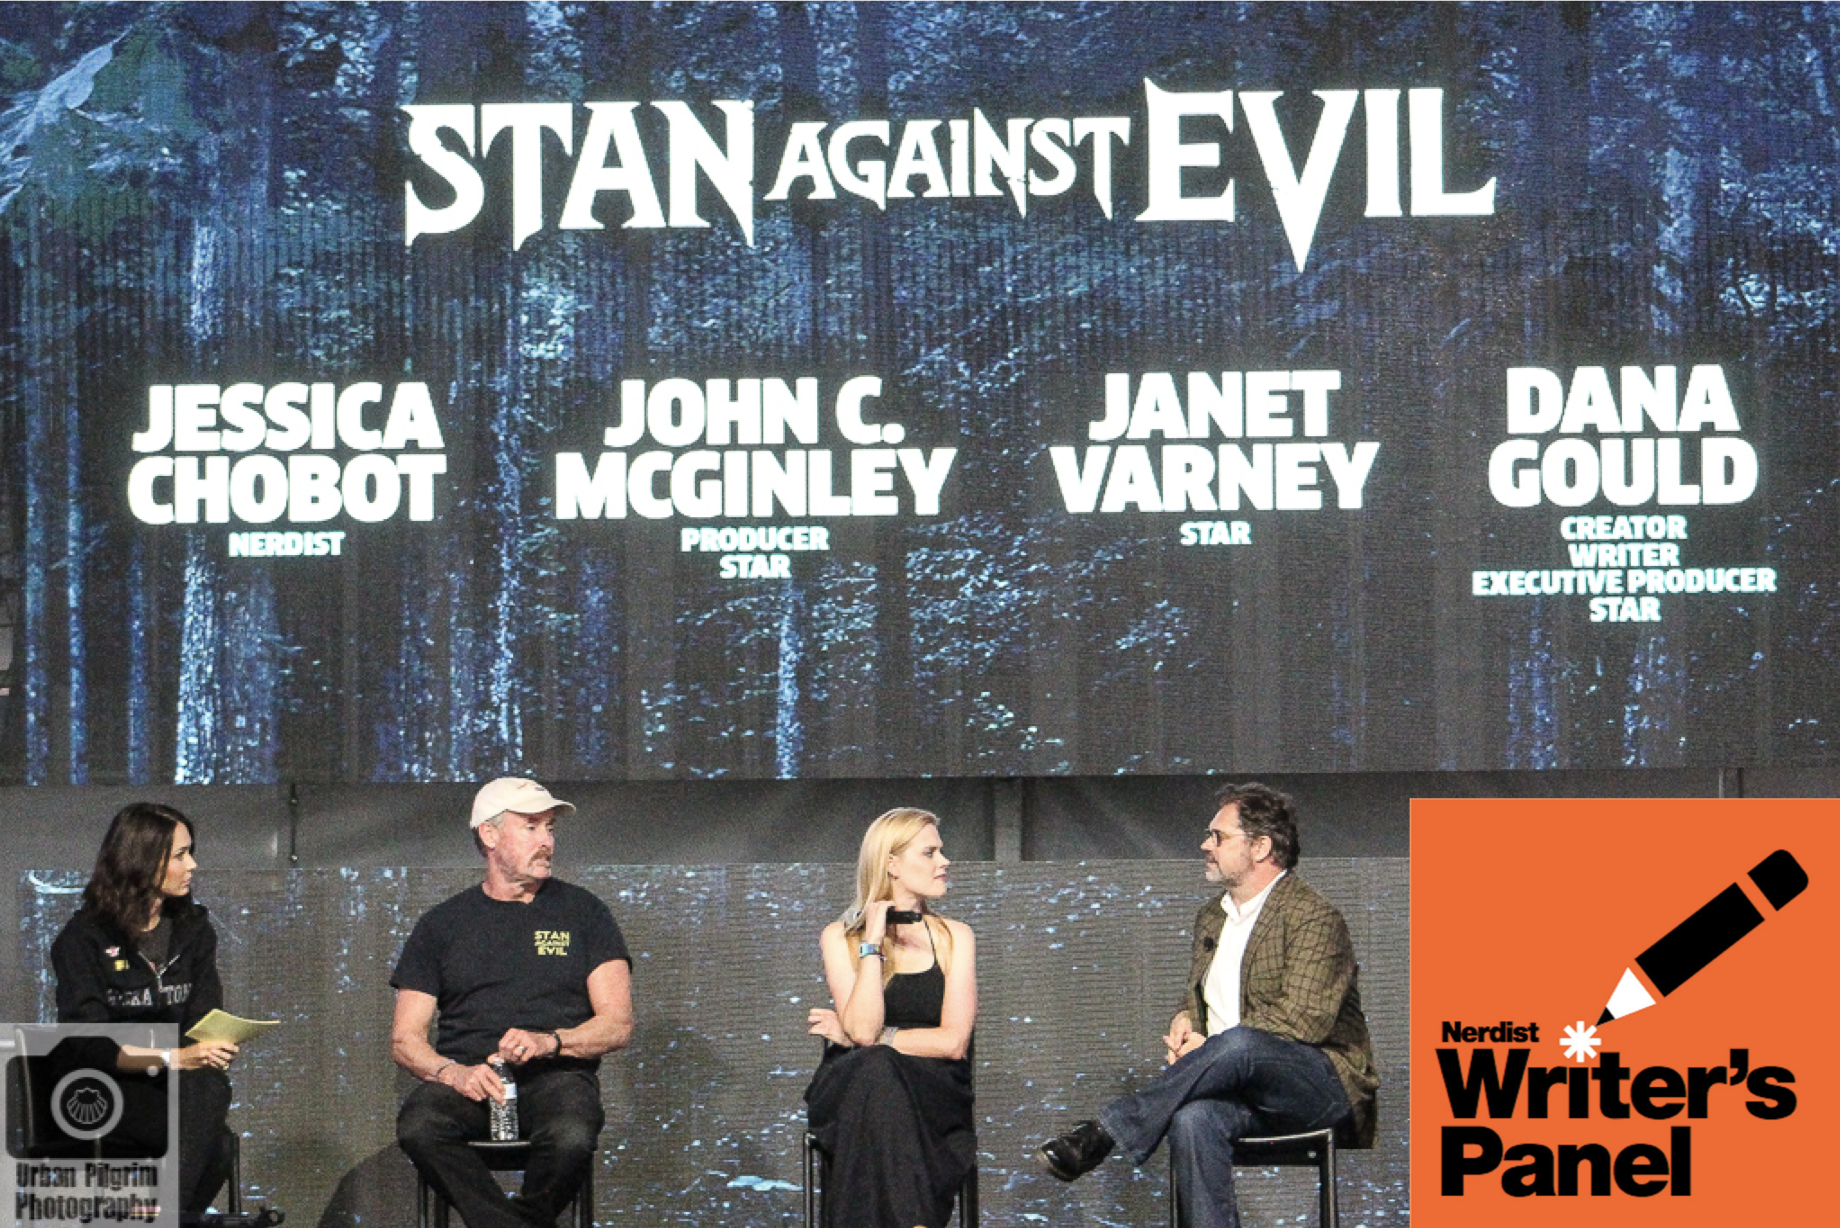 Nerdist Writers Panel#358: Stan Against Evil(October 31st, 2017) - Live from Id10tfest, creator Dana Gould (The Simpsons) and stars John C. McGinley (Scrubs) and Janet Varney (Legend of Korra) look back on the show's first season and look forward to the second which premieres November 1 on IFC!Moderated by Nerdist's Jessica Chobot.Stan Against Evil theme is by Eban Schletter.